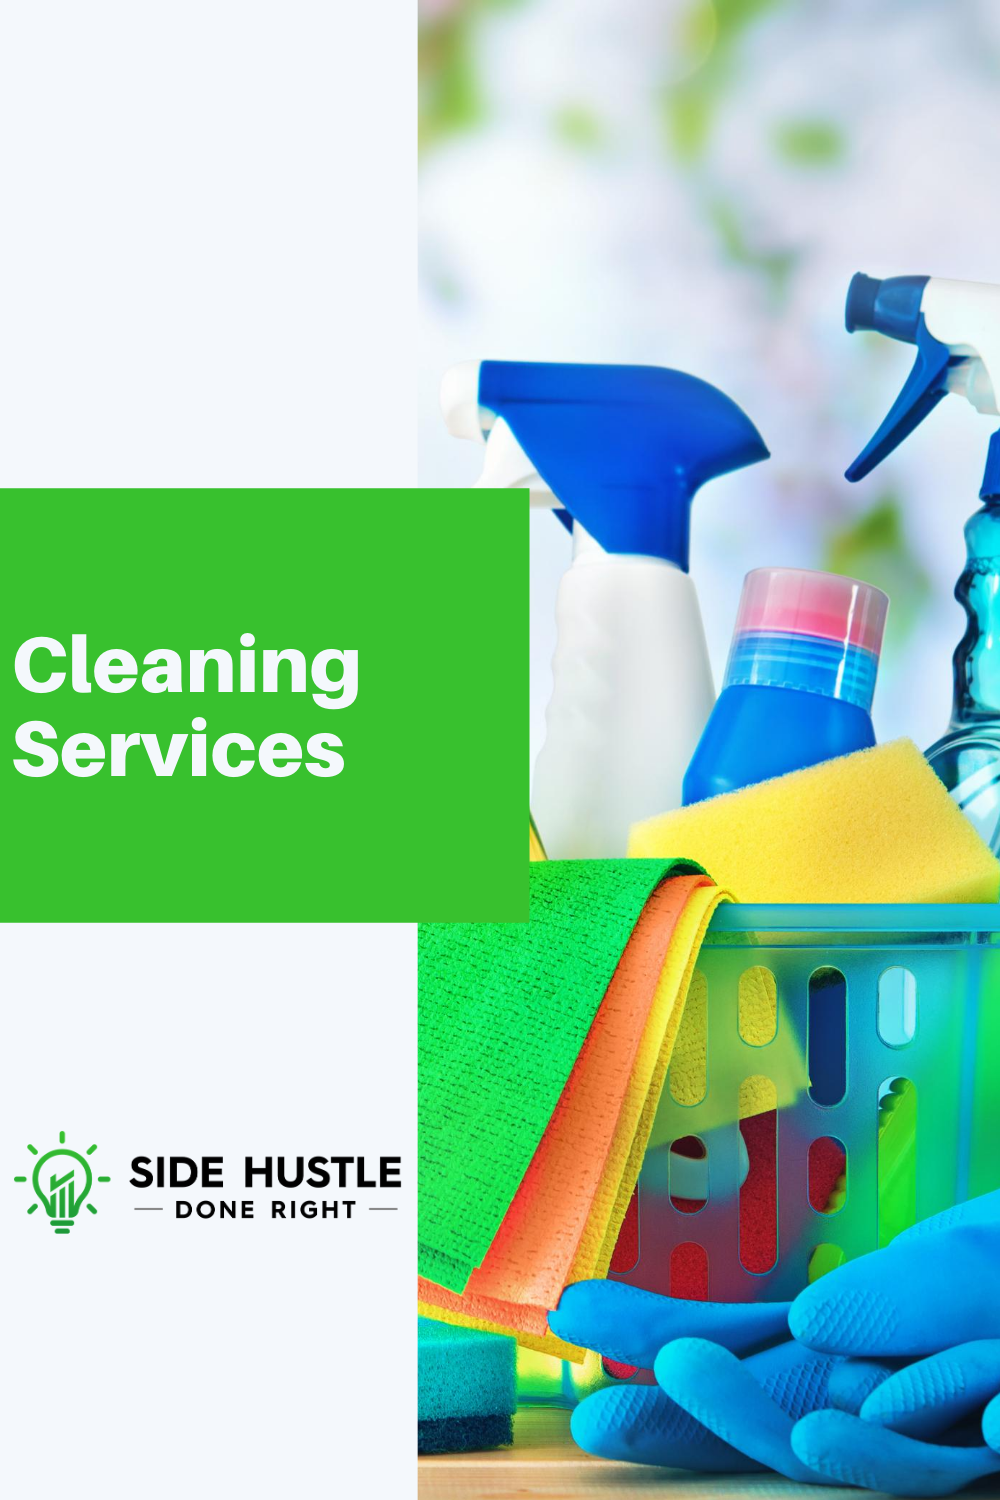 Cleaning Services Cleaning Service Cleaning Services Business